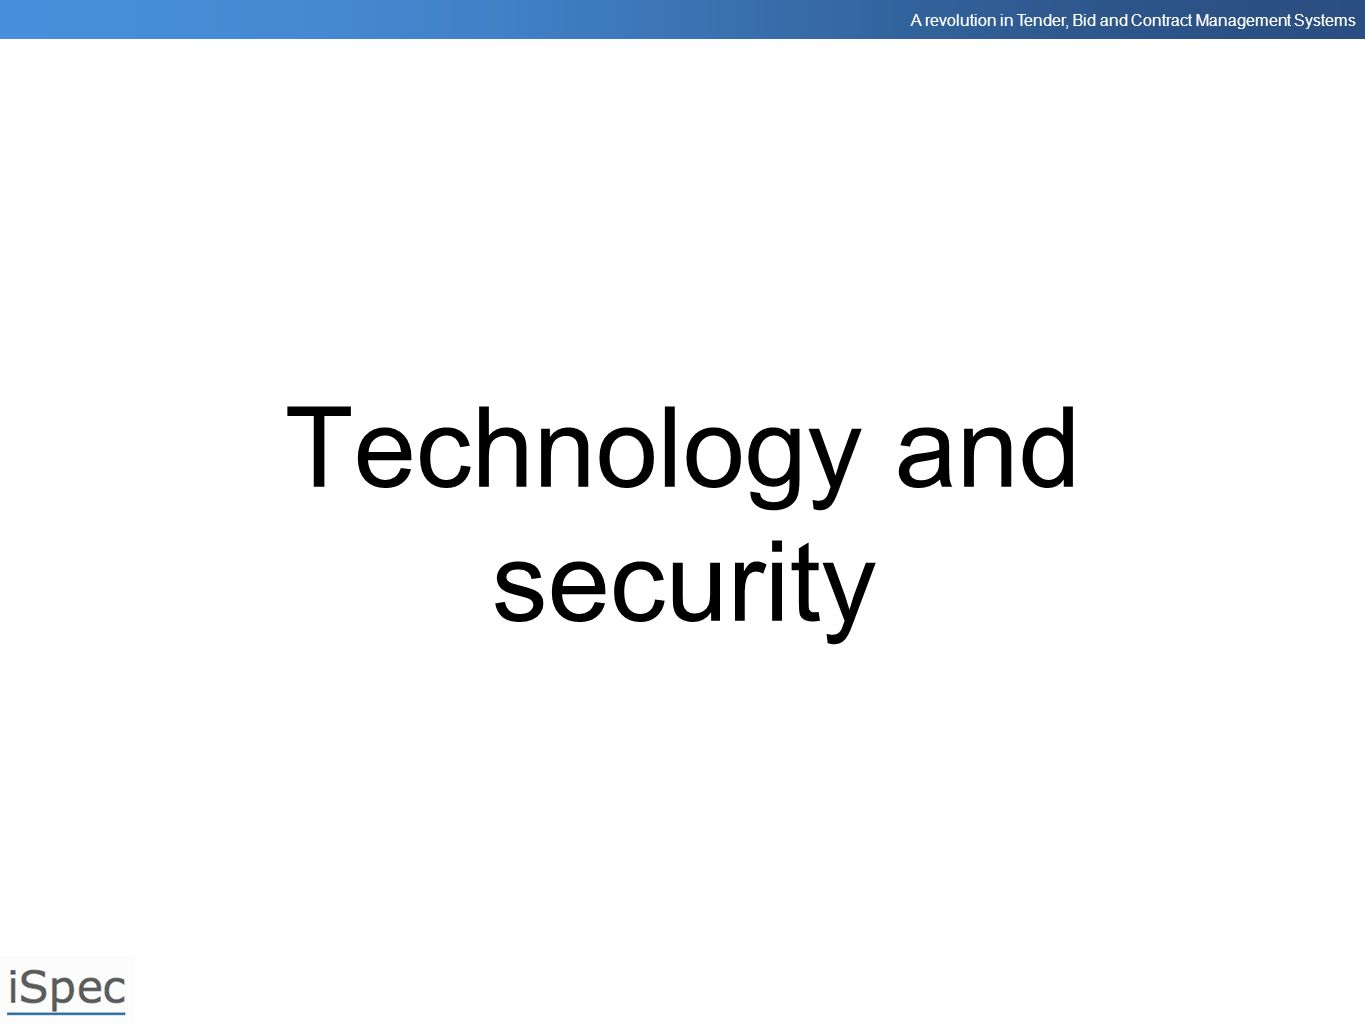 Technology and security